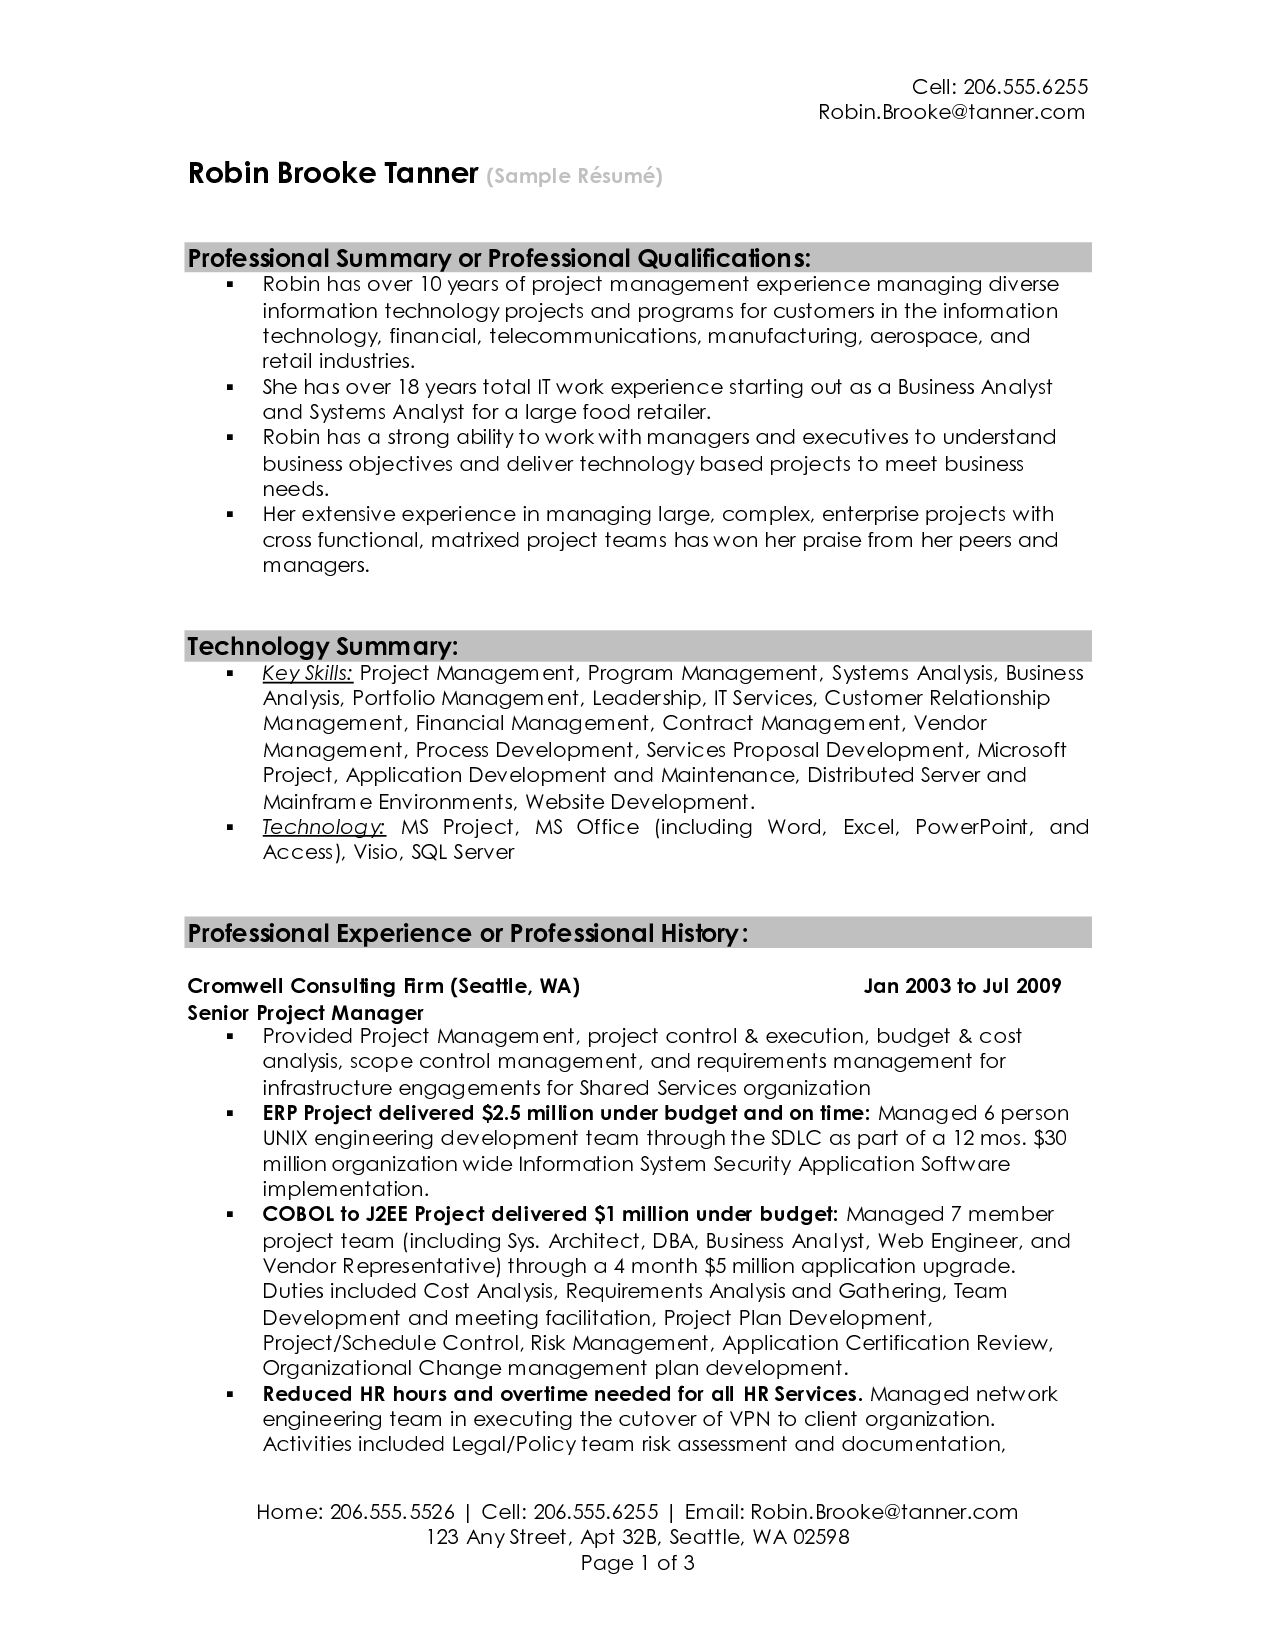 Summary for resume example